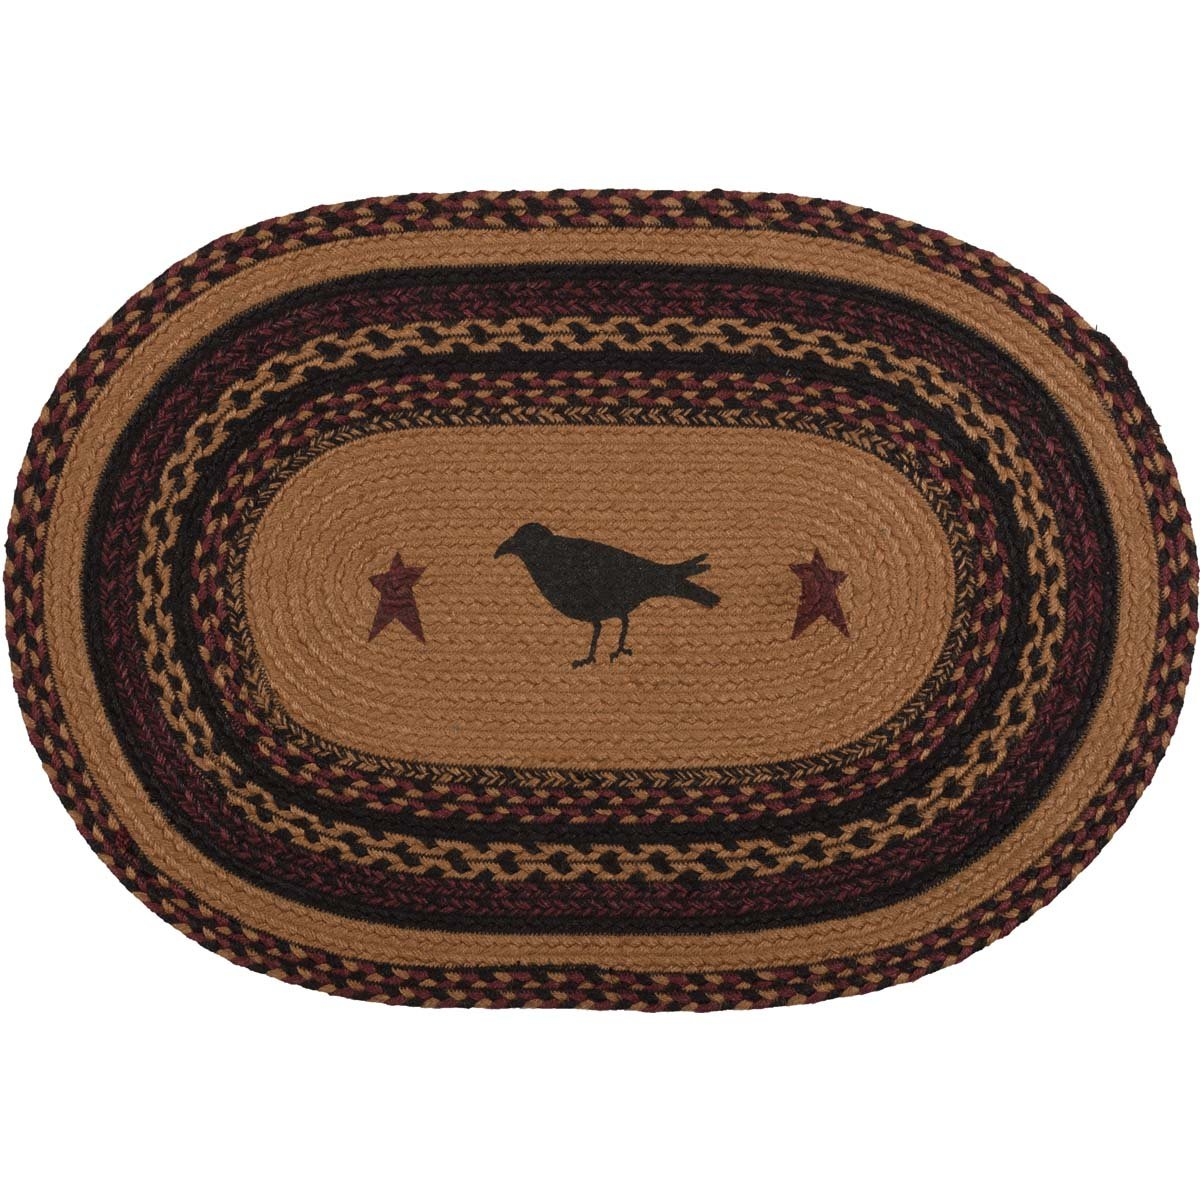 VHC Brands 37901 Primitive Flooring-Heritage Farms Tan Crow Oval Jute Rug, 1'8' x 2'6', Mustard Yellow 1'8 x 2'6